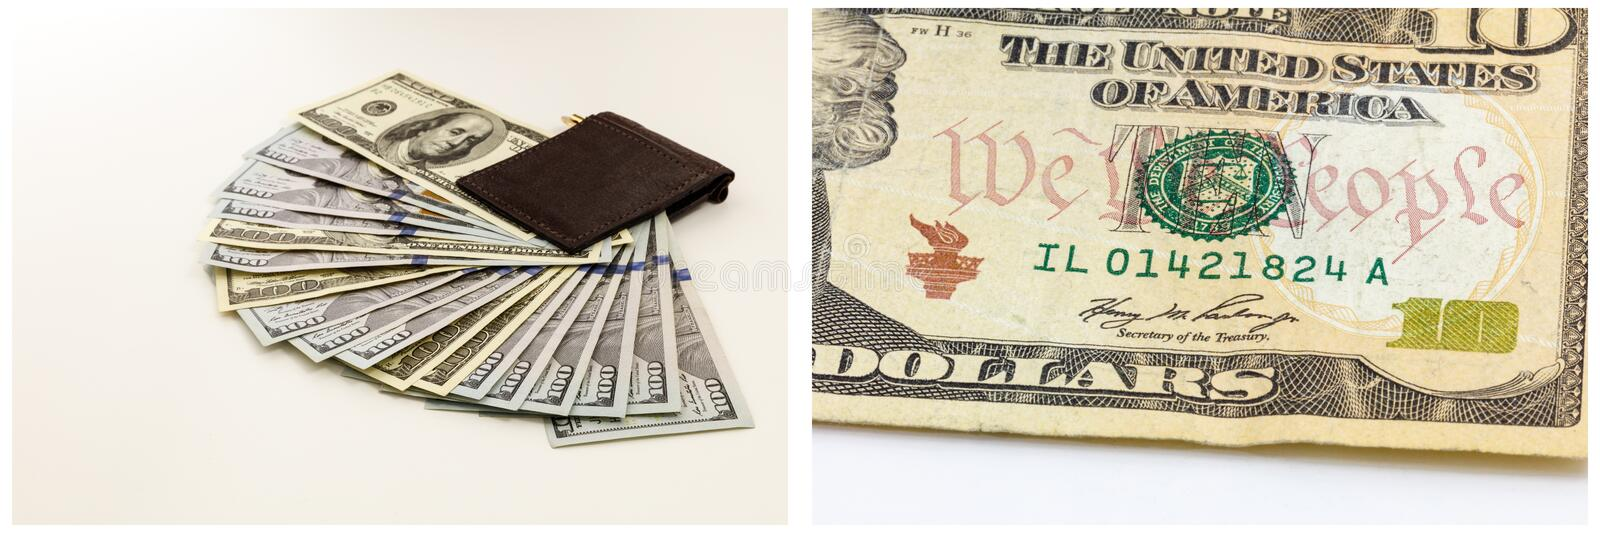 Wallet cash fanned savings isolated collage. Billfold of American currency paper cash bills fan display savings isolated white collection collage royalty free stock photo